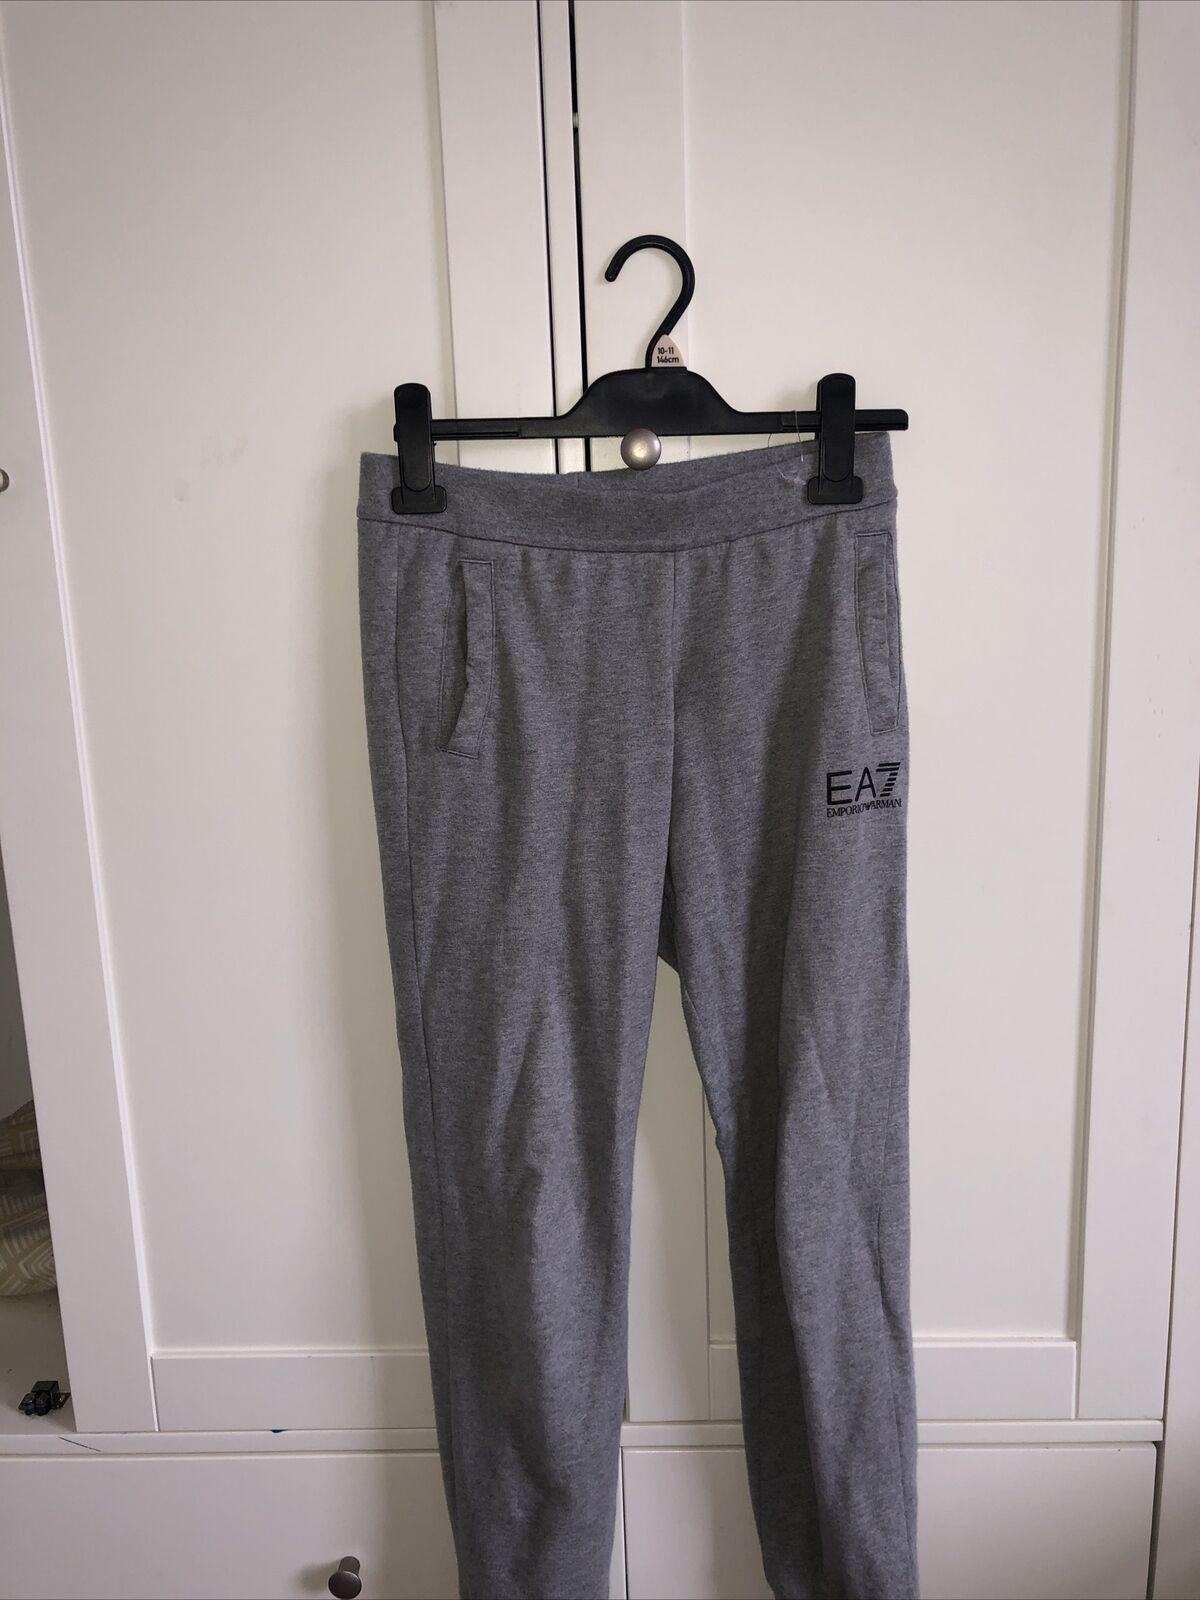 Ea7 Full Track Suit Size 12